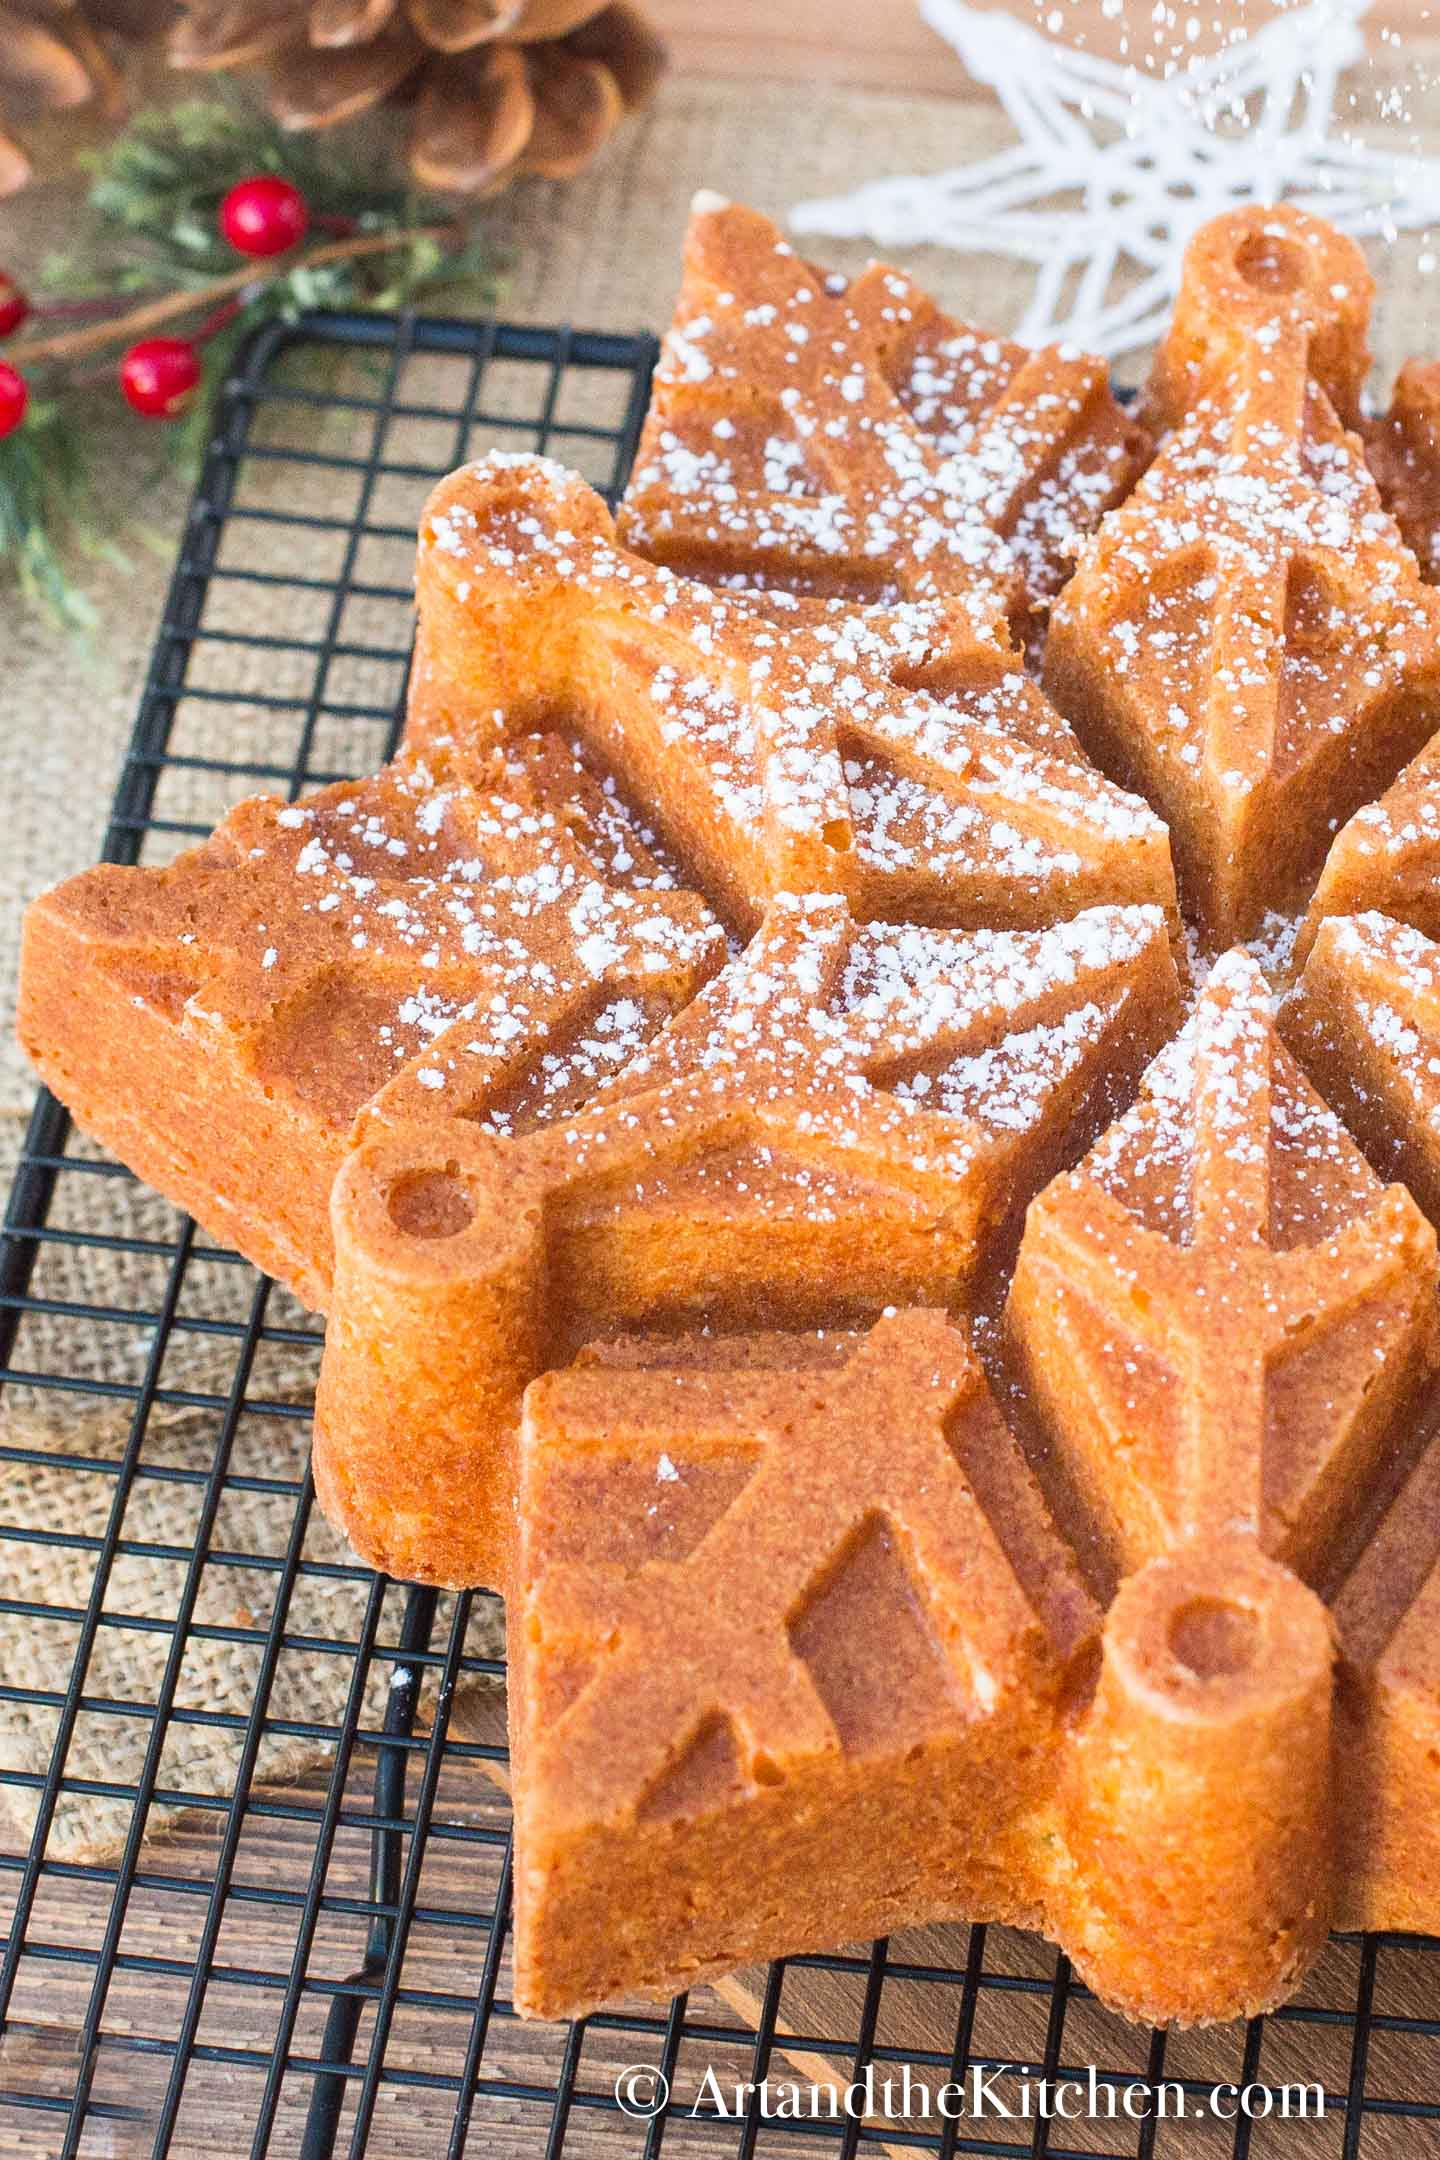 Snowflake shaped bundt cake made with eggnog, sprinkled with confectioners sugar.